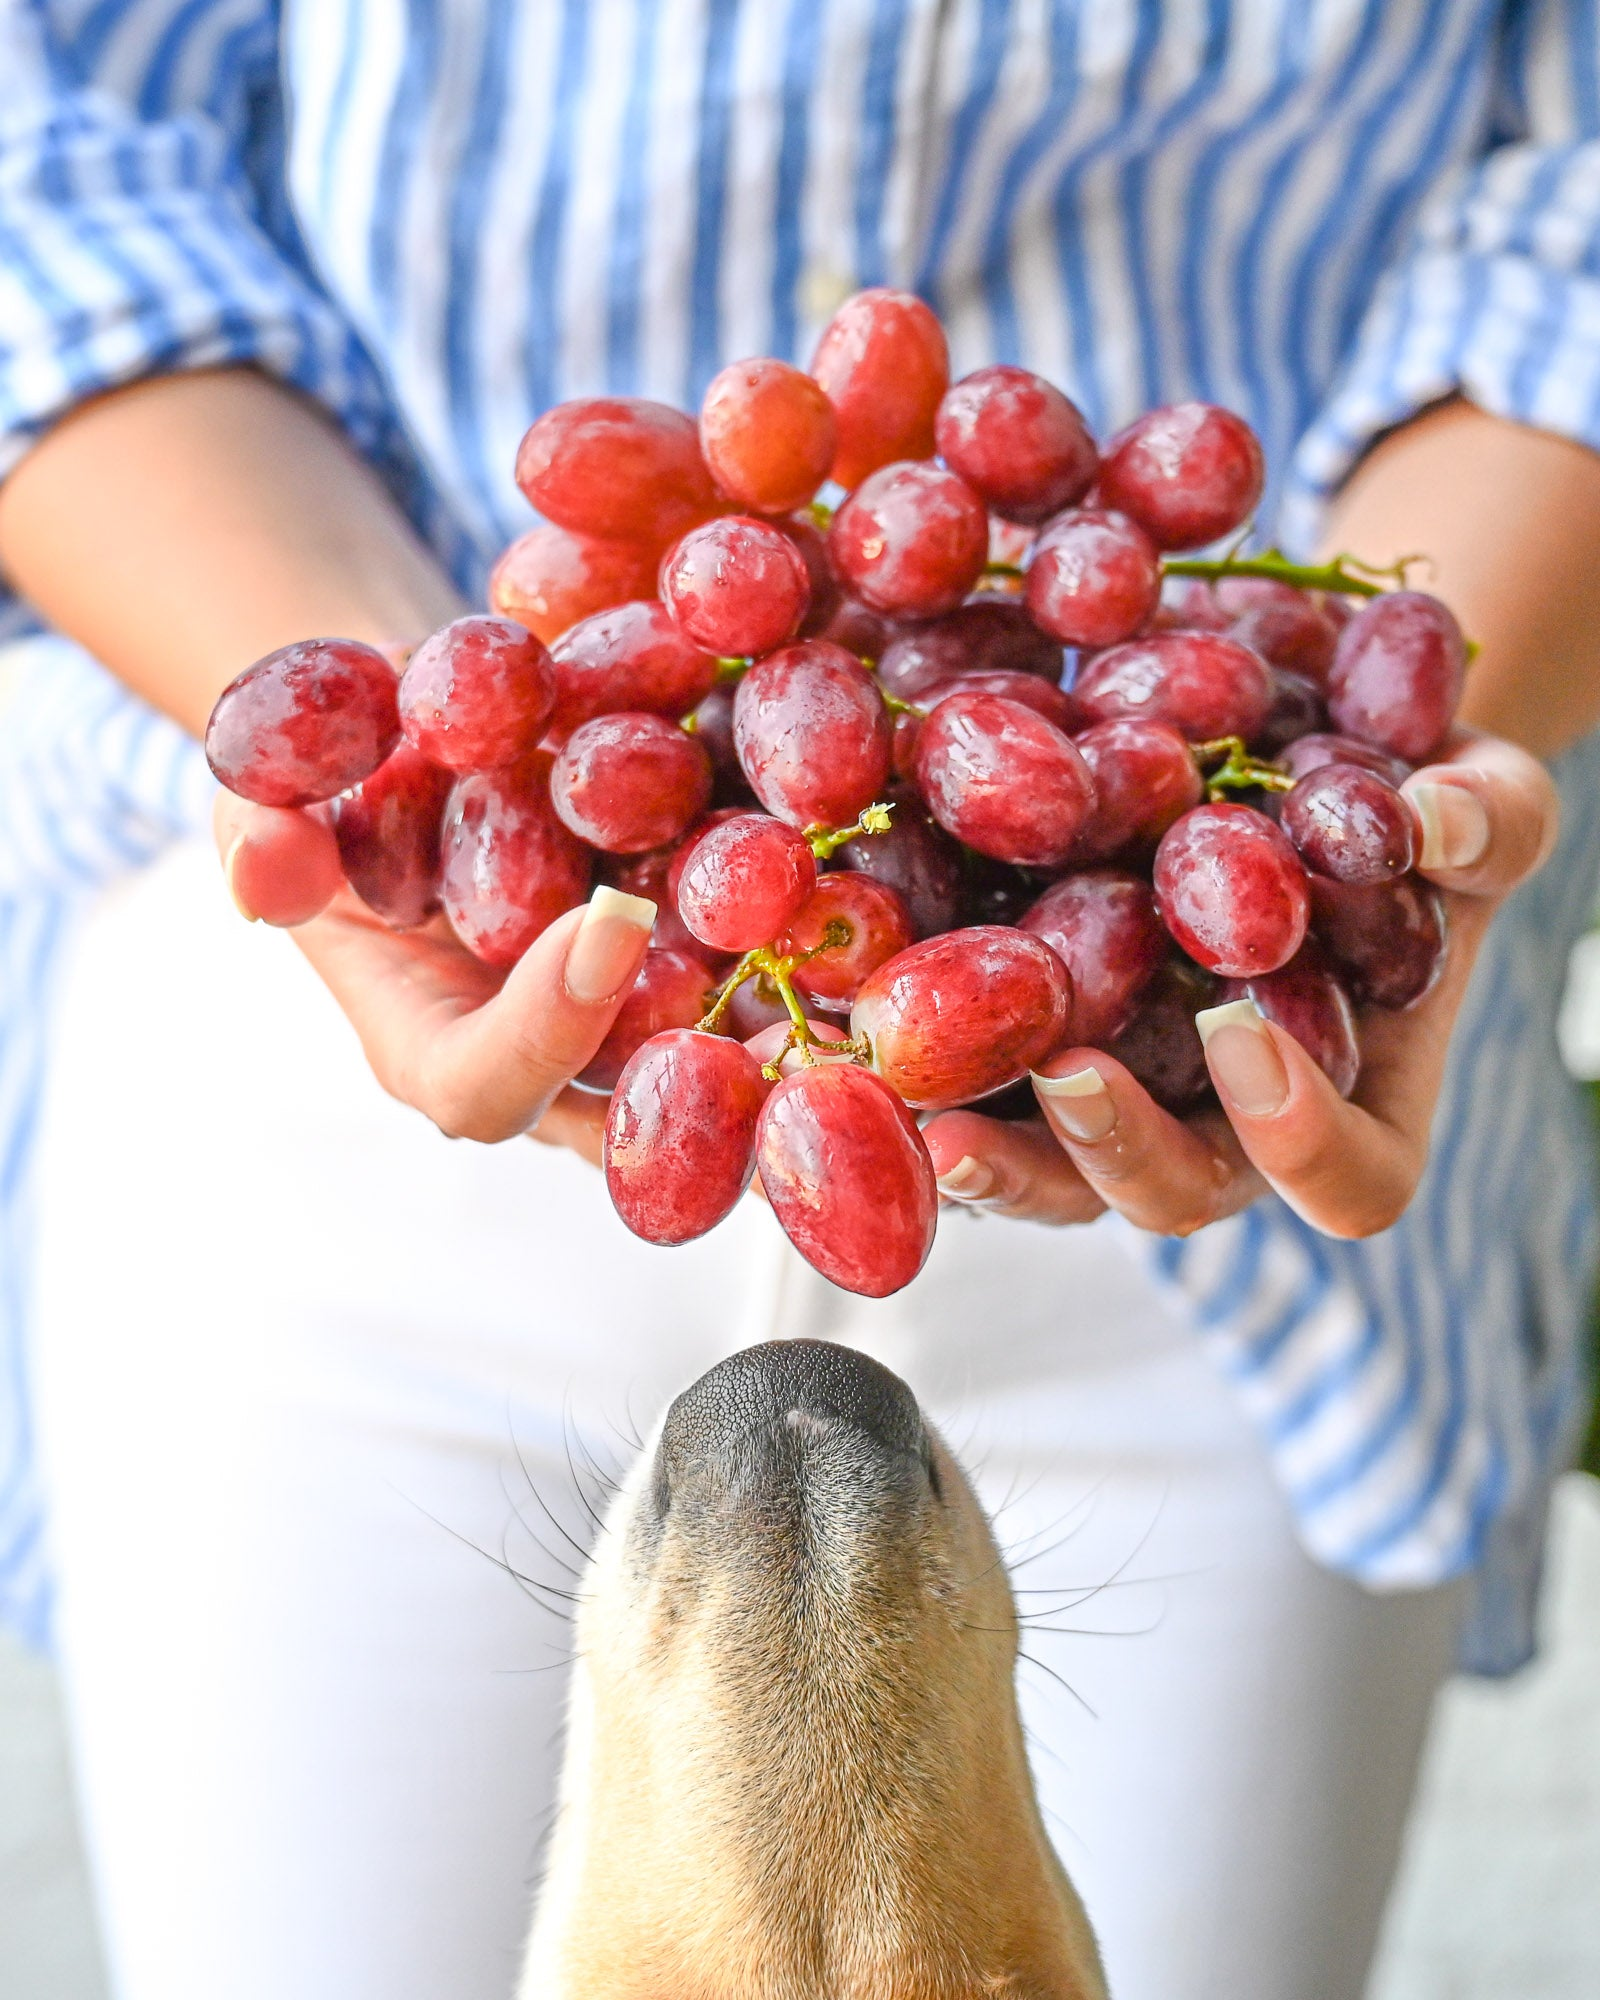 What to do if your dog eats grapes